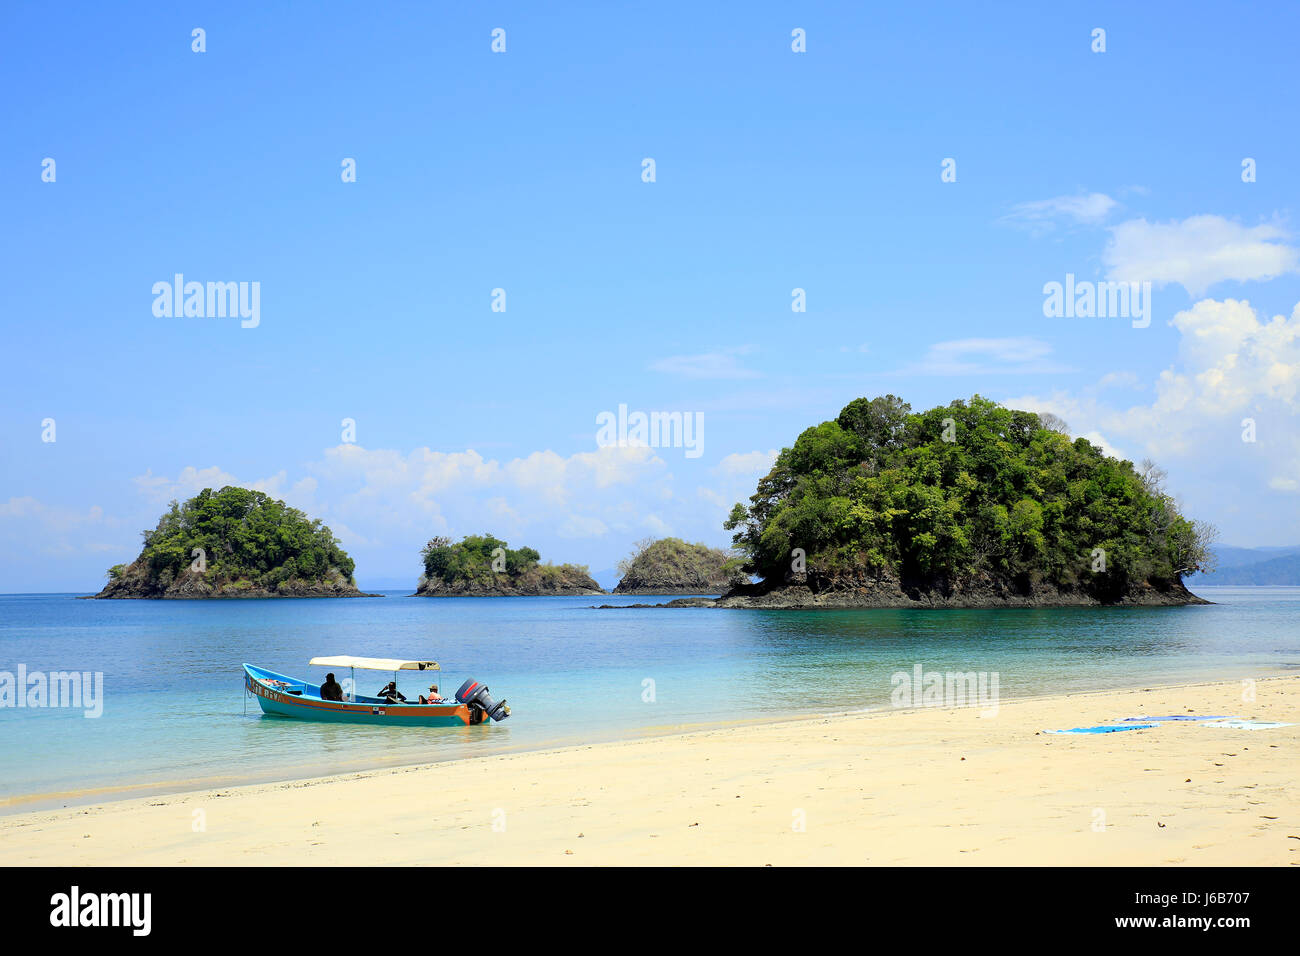 Beach with Small Isles and a Dive Boat. Coiba National Park, Panama - Stock Image